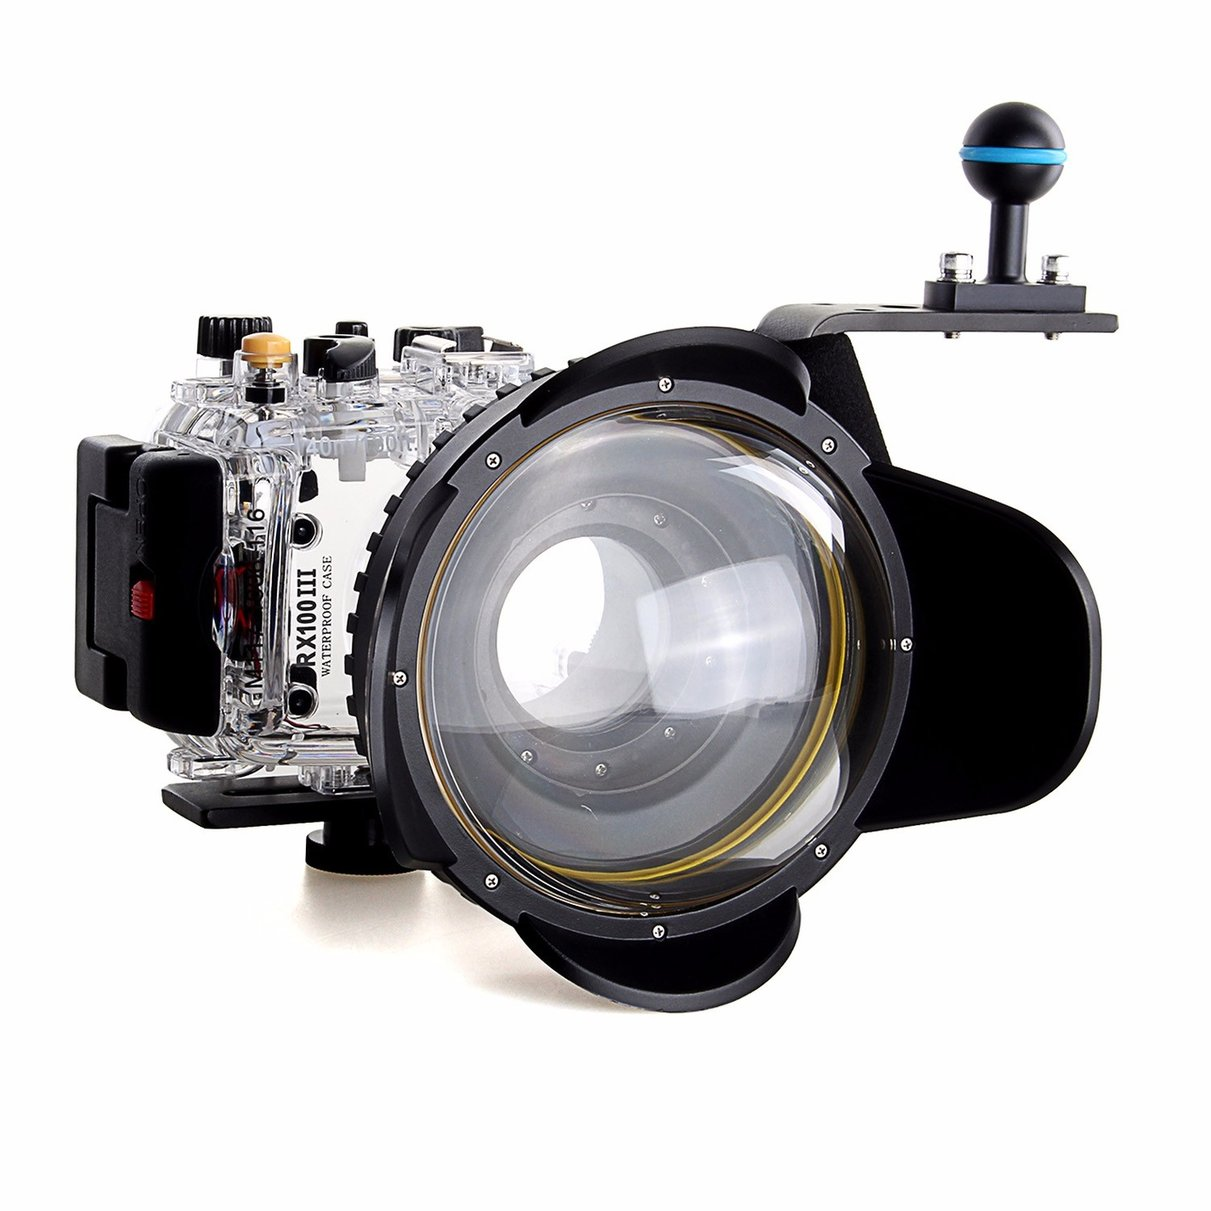 40m/130f Waterproof Underwater Housing Case For Sony RX100 III + Red Filter + Fisheye dome port Lens+ Aluminium Diving handle 30 mi diving dome port underwater lens housing for xiaoyi 4k xiaoyi 2 camera with waterproof case hood cover case pistol tigger